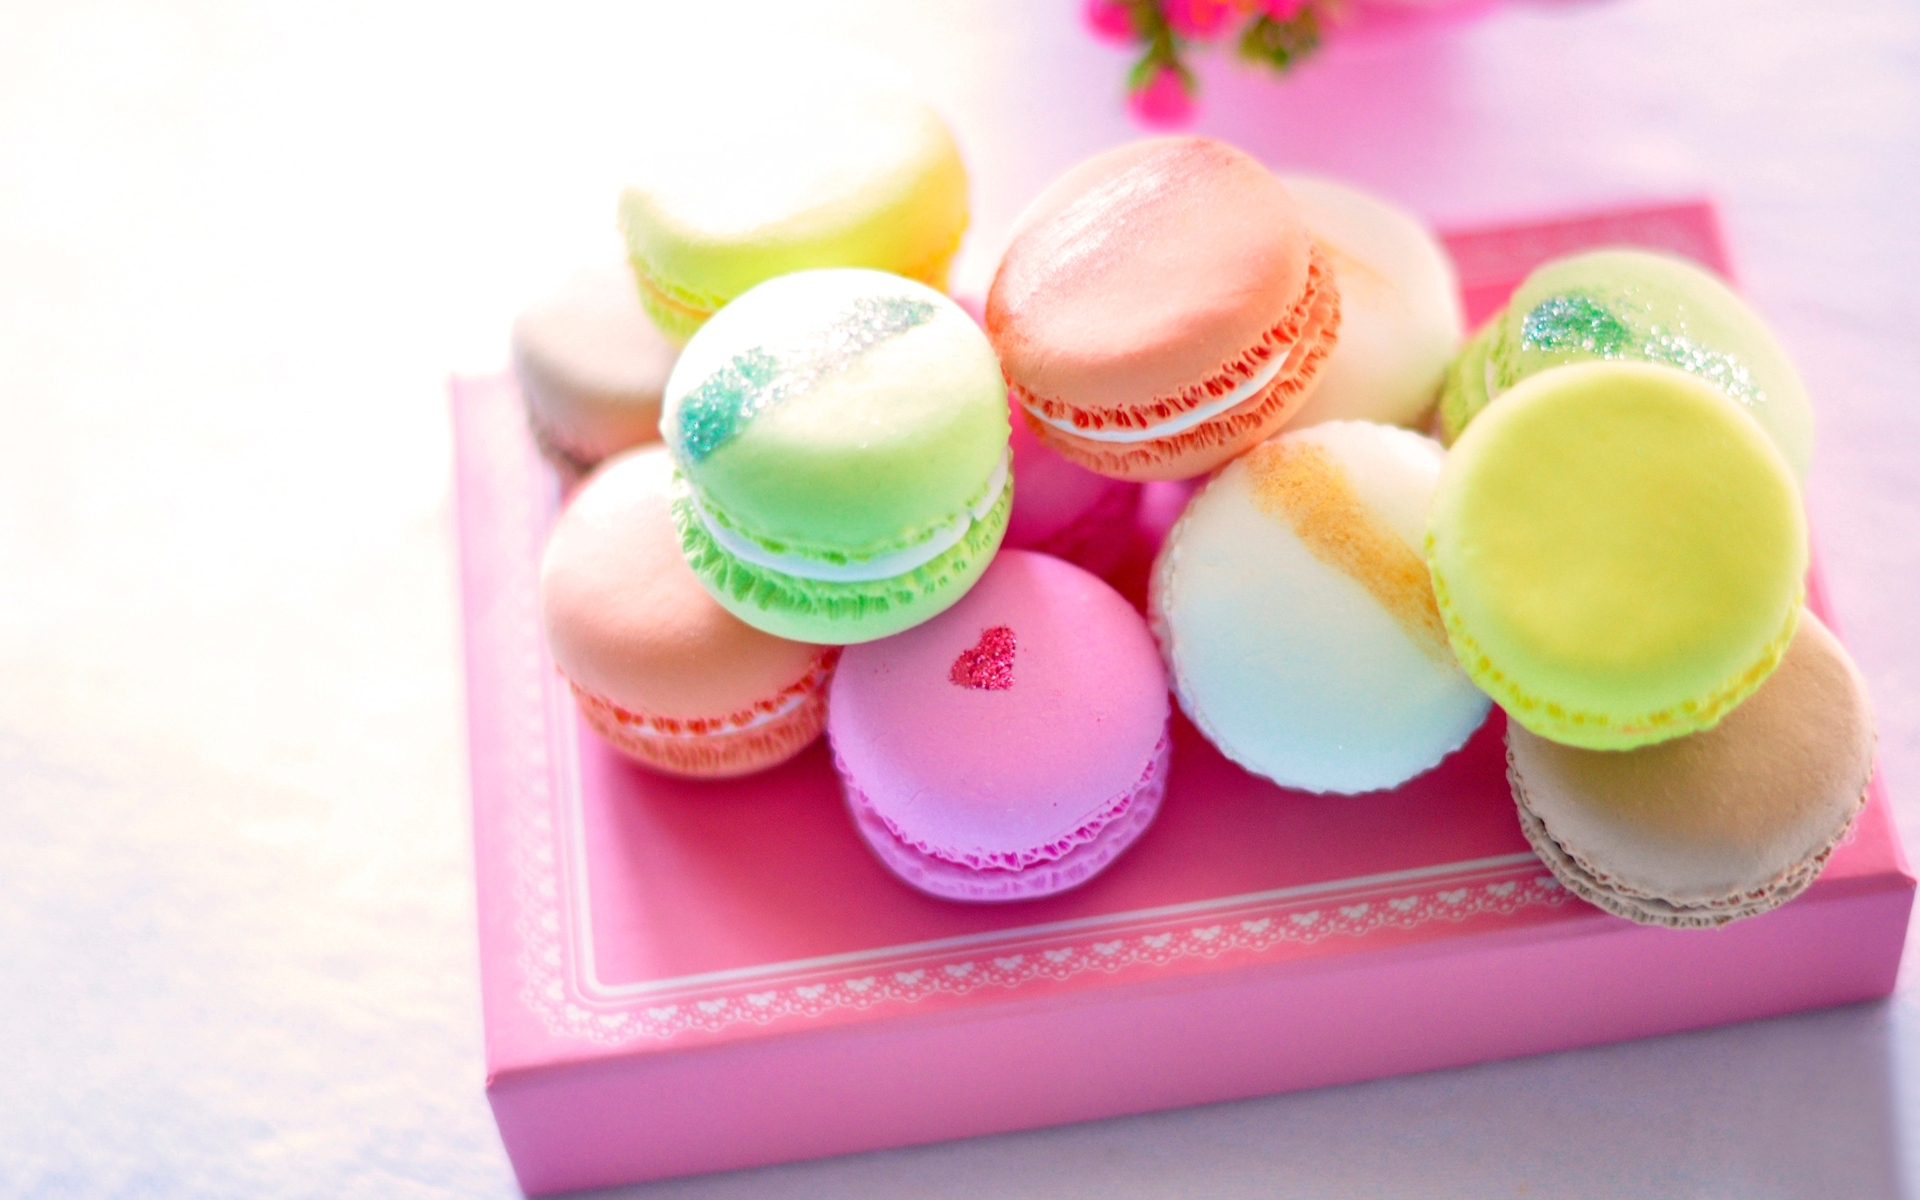 Colorful Macaron Wallpaper